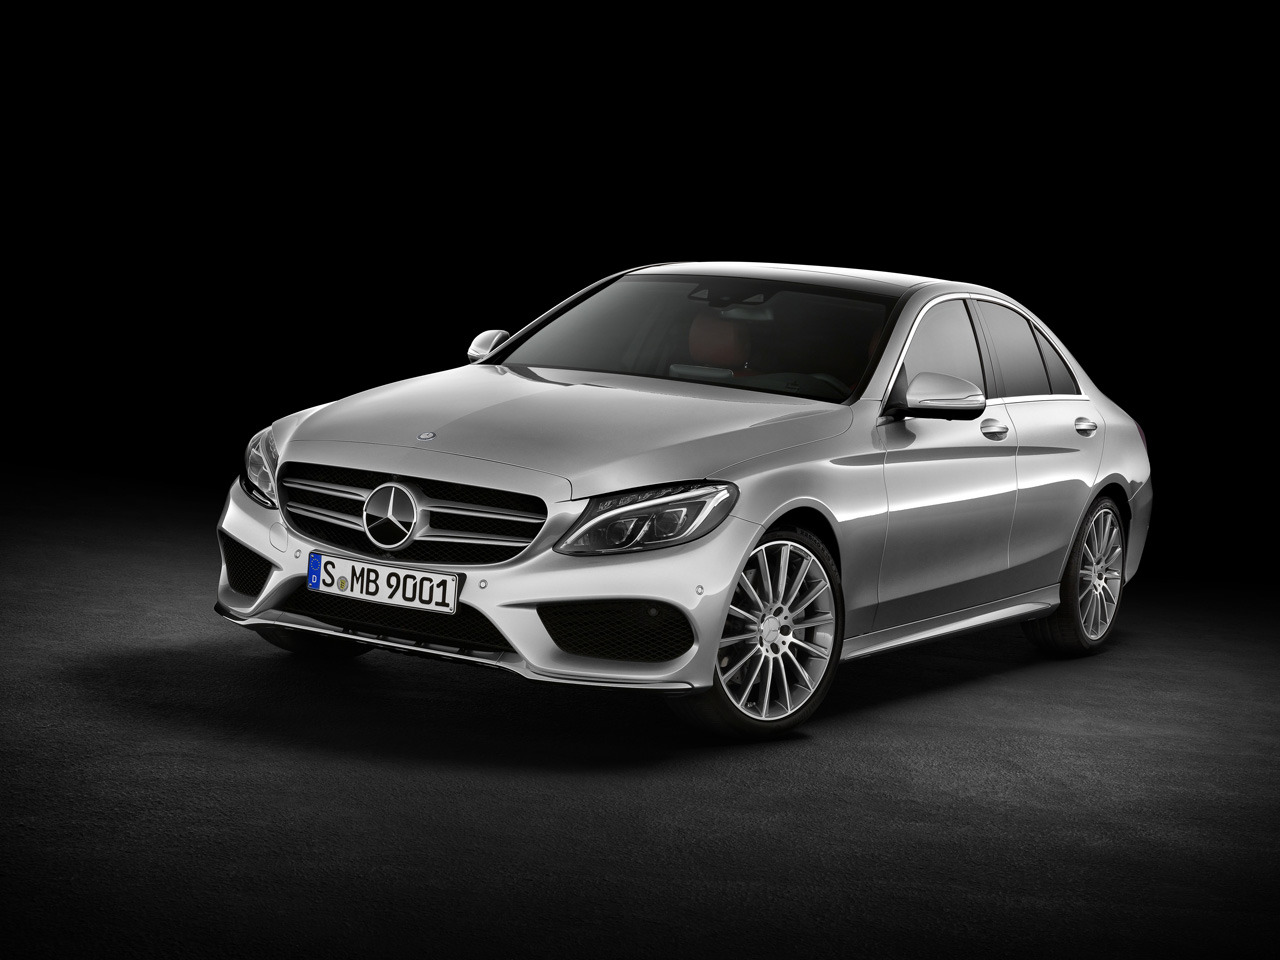 Mercedes Classe C 2014 Dark Cars Wallpapers